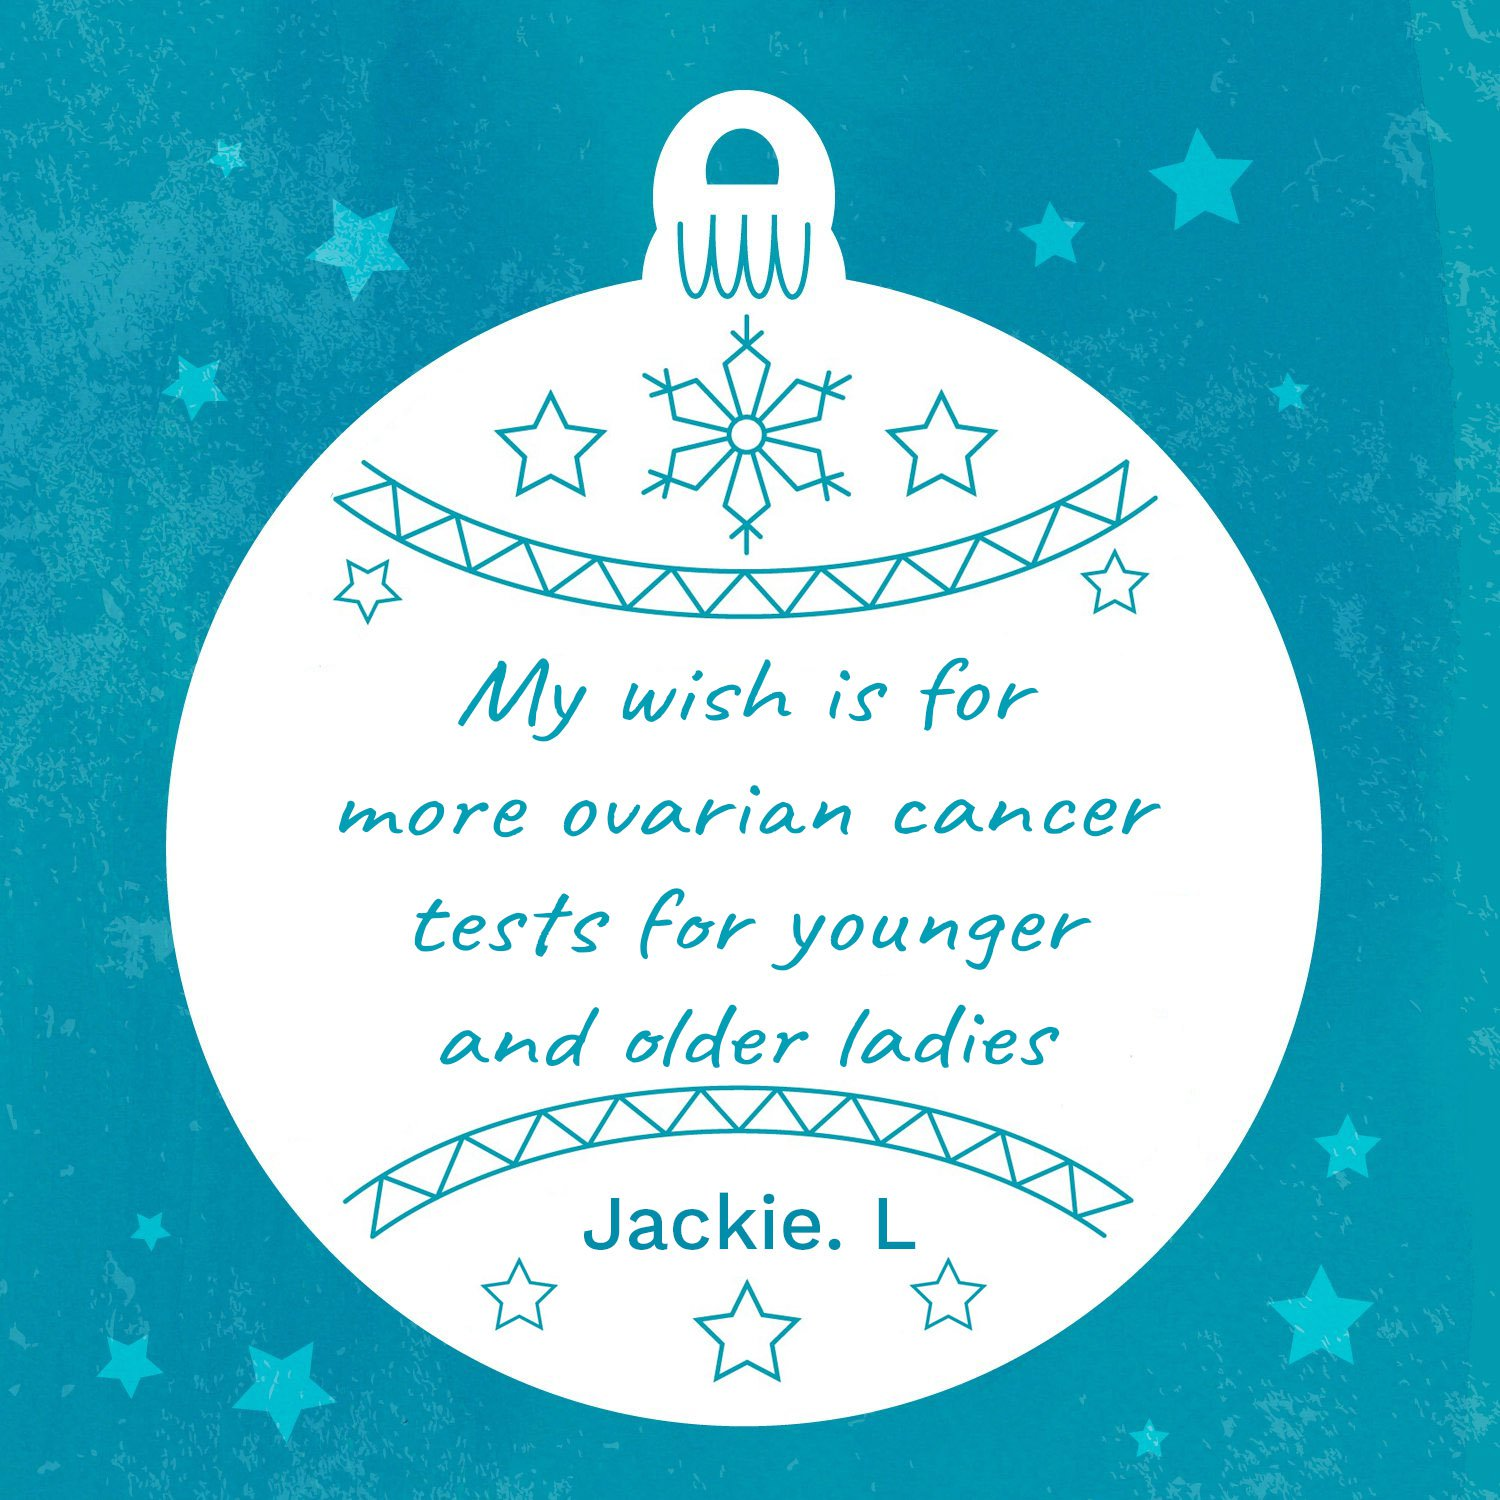 Jackie's wish for younger and older ladies ovarian cancer.jpg